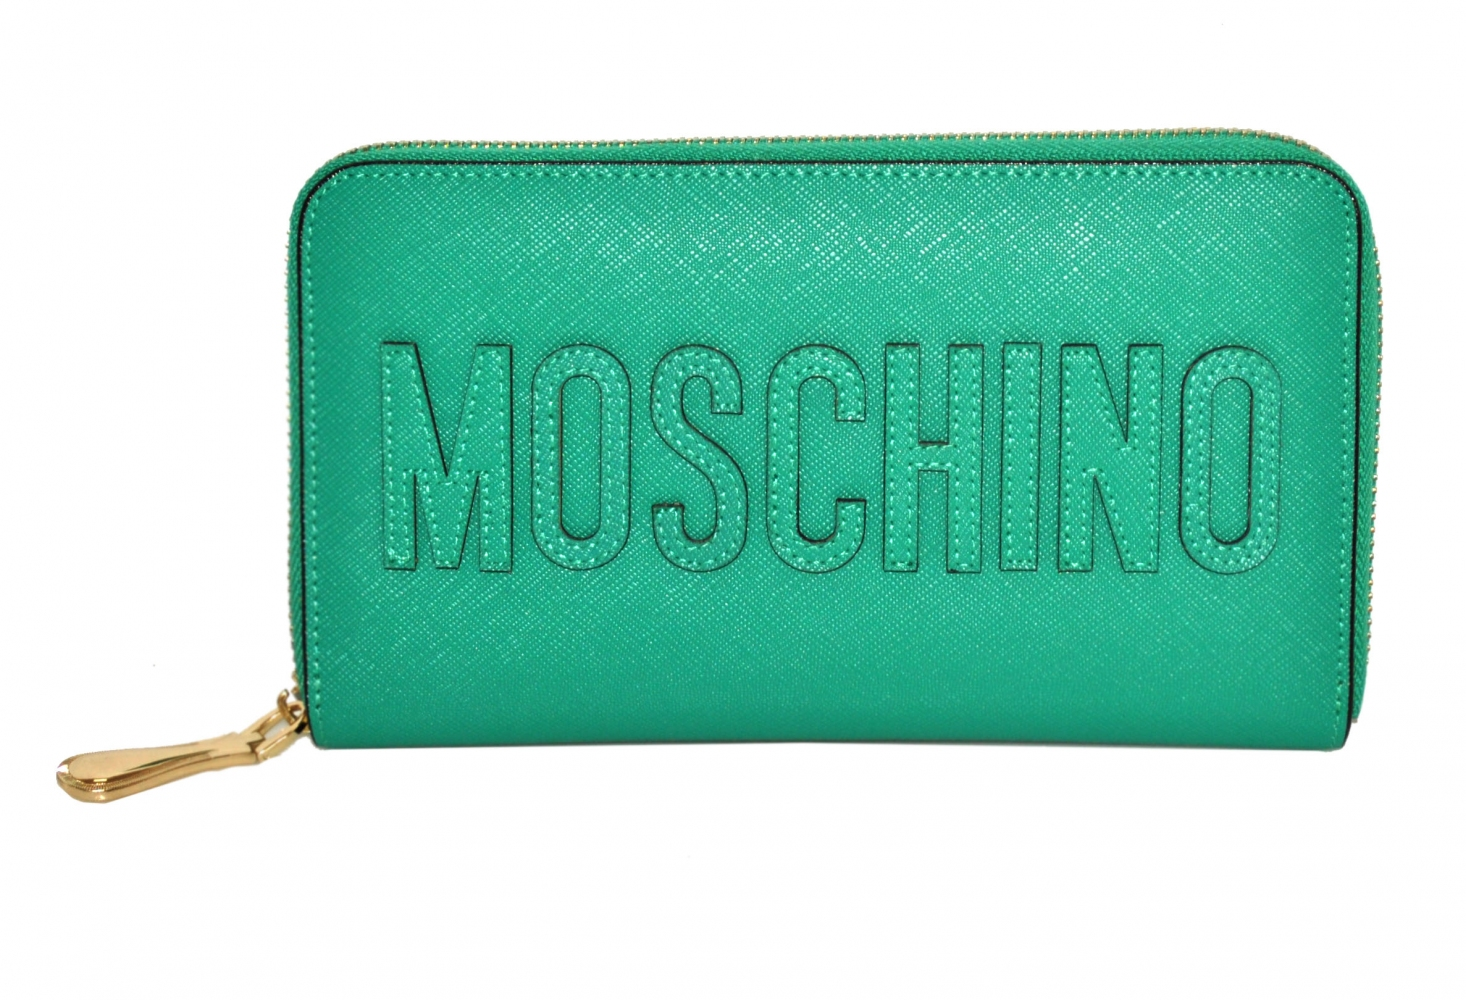 Women's purse 175074 green